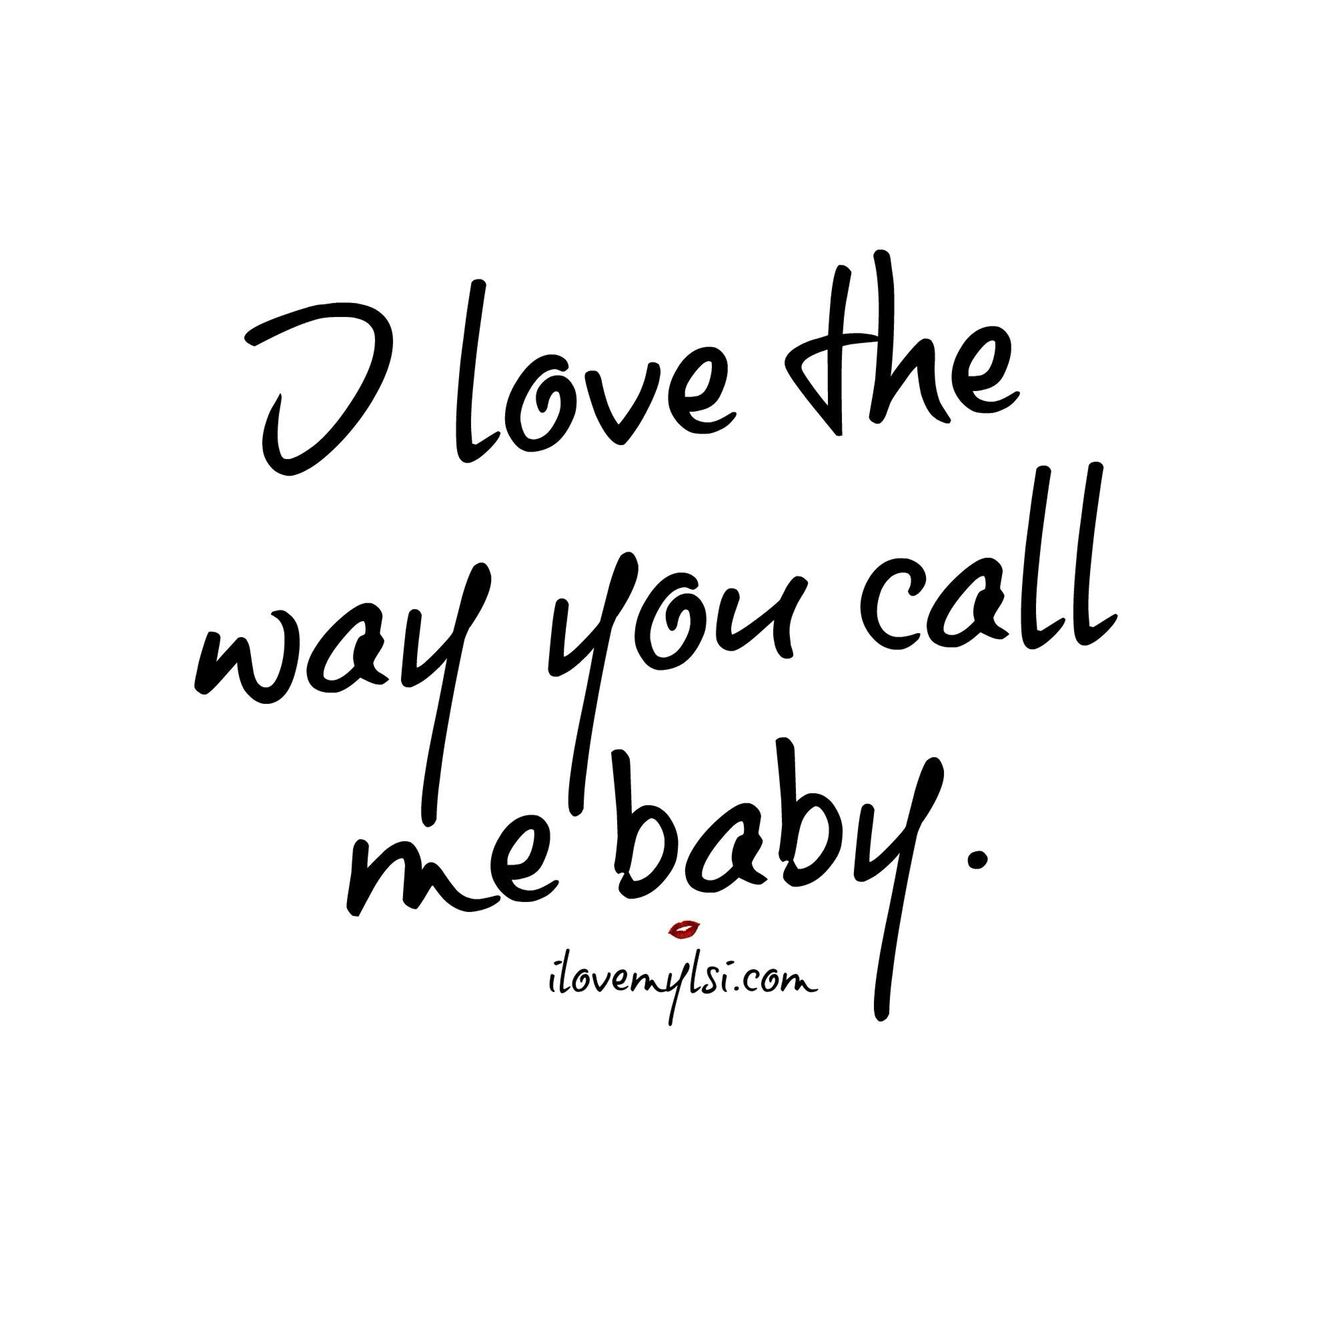 I Love The Way You Call Me Baby Tell Me More Love Quotes Love